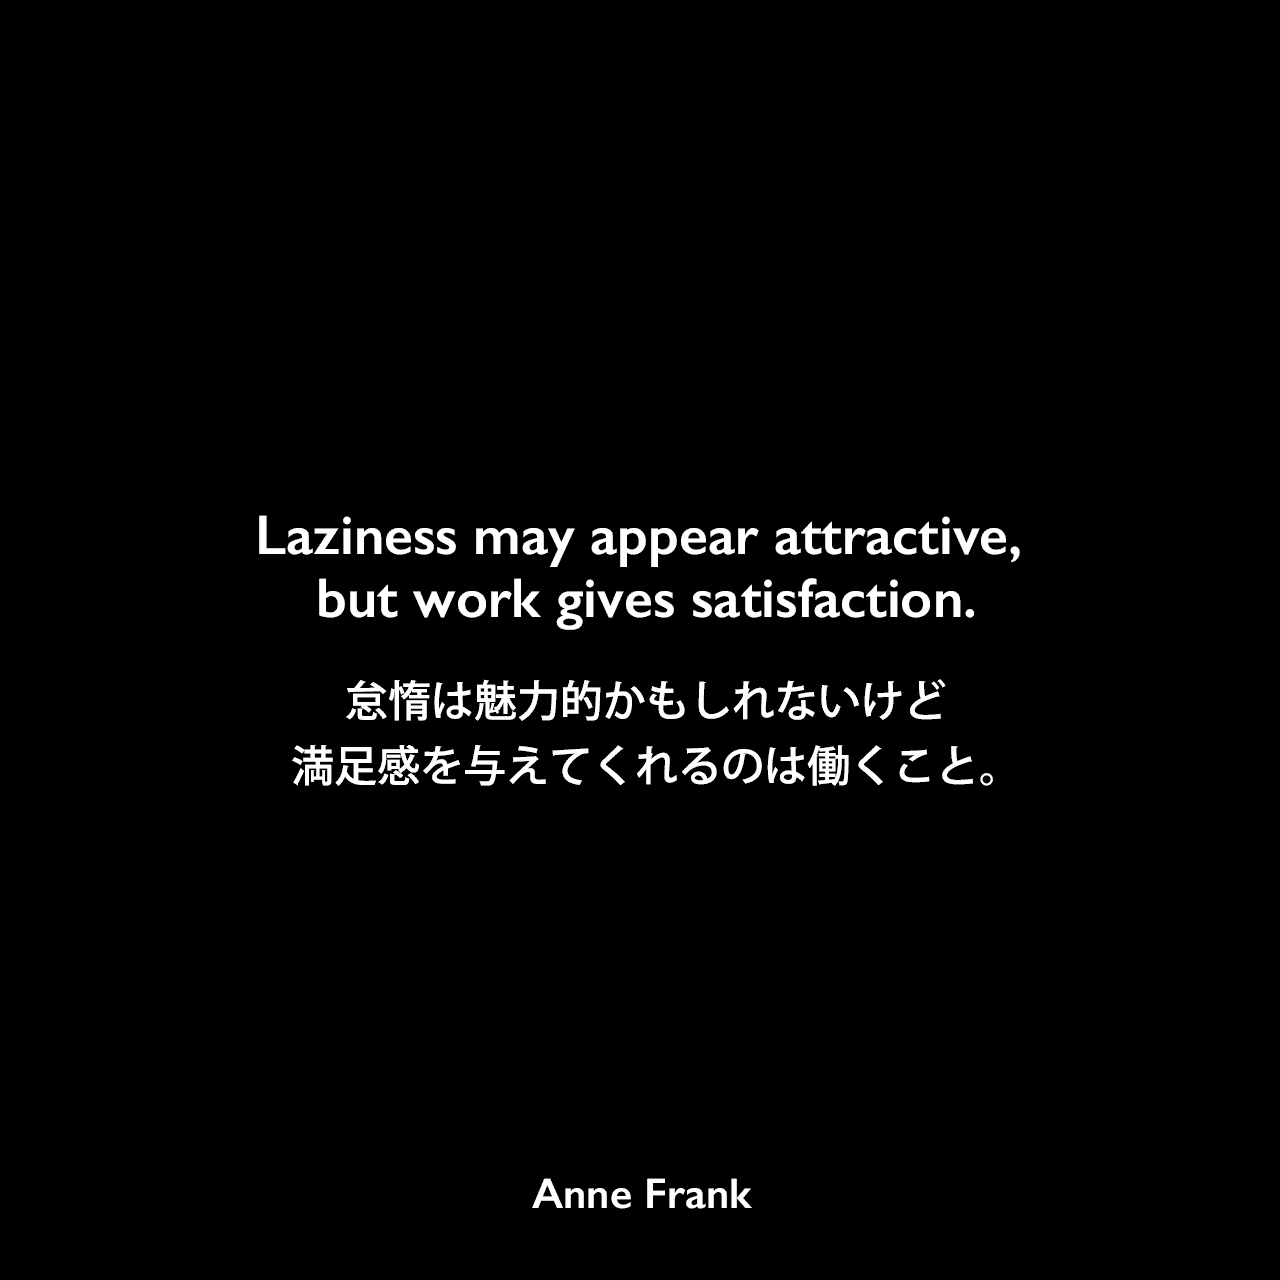 Laziness may appear attractive, but work gives satisfaction.怠惰は魅力的かもしれないけど、満足感を与えてくれるのは働くこと。- 「アンネの日記」よりAnne Frank